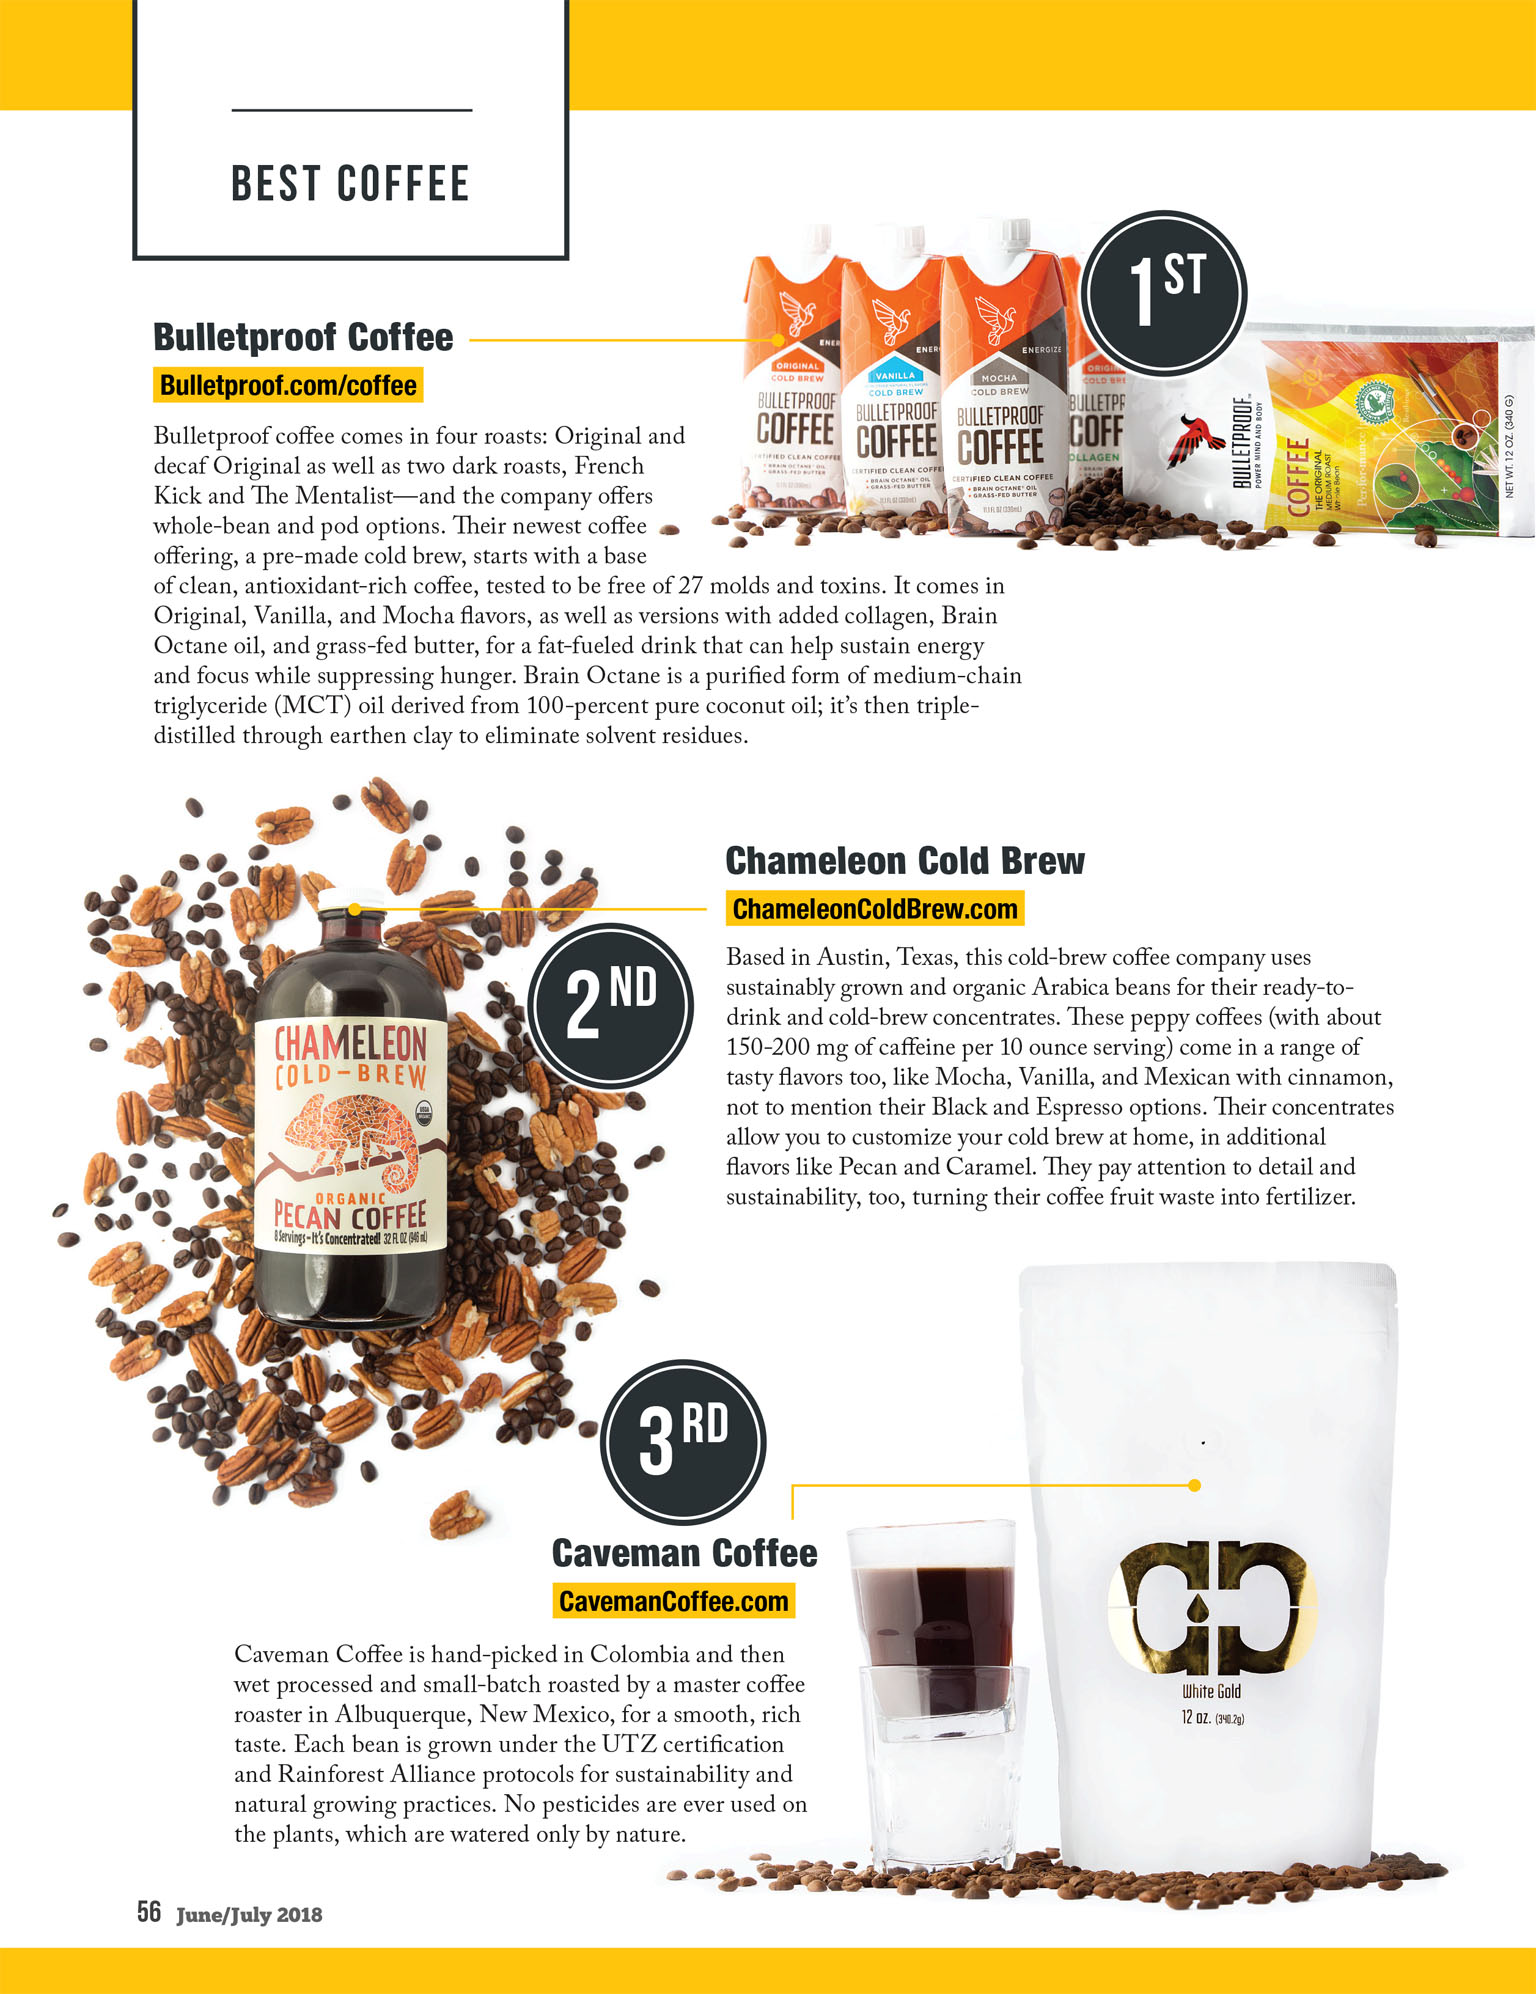 Best Paleo Coffee | Bulletproof, Chameleon Cold Brew, Caveman Coffee | Paleo Magazine